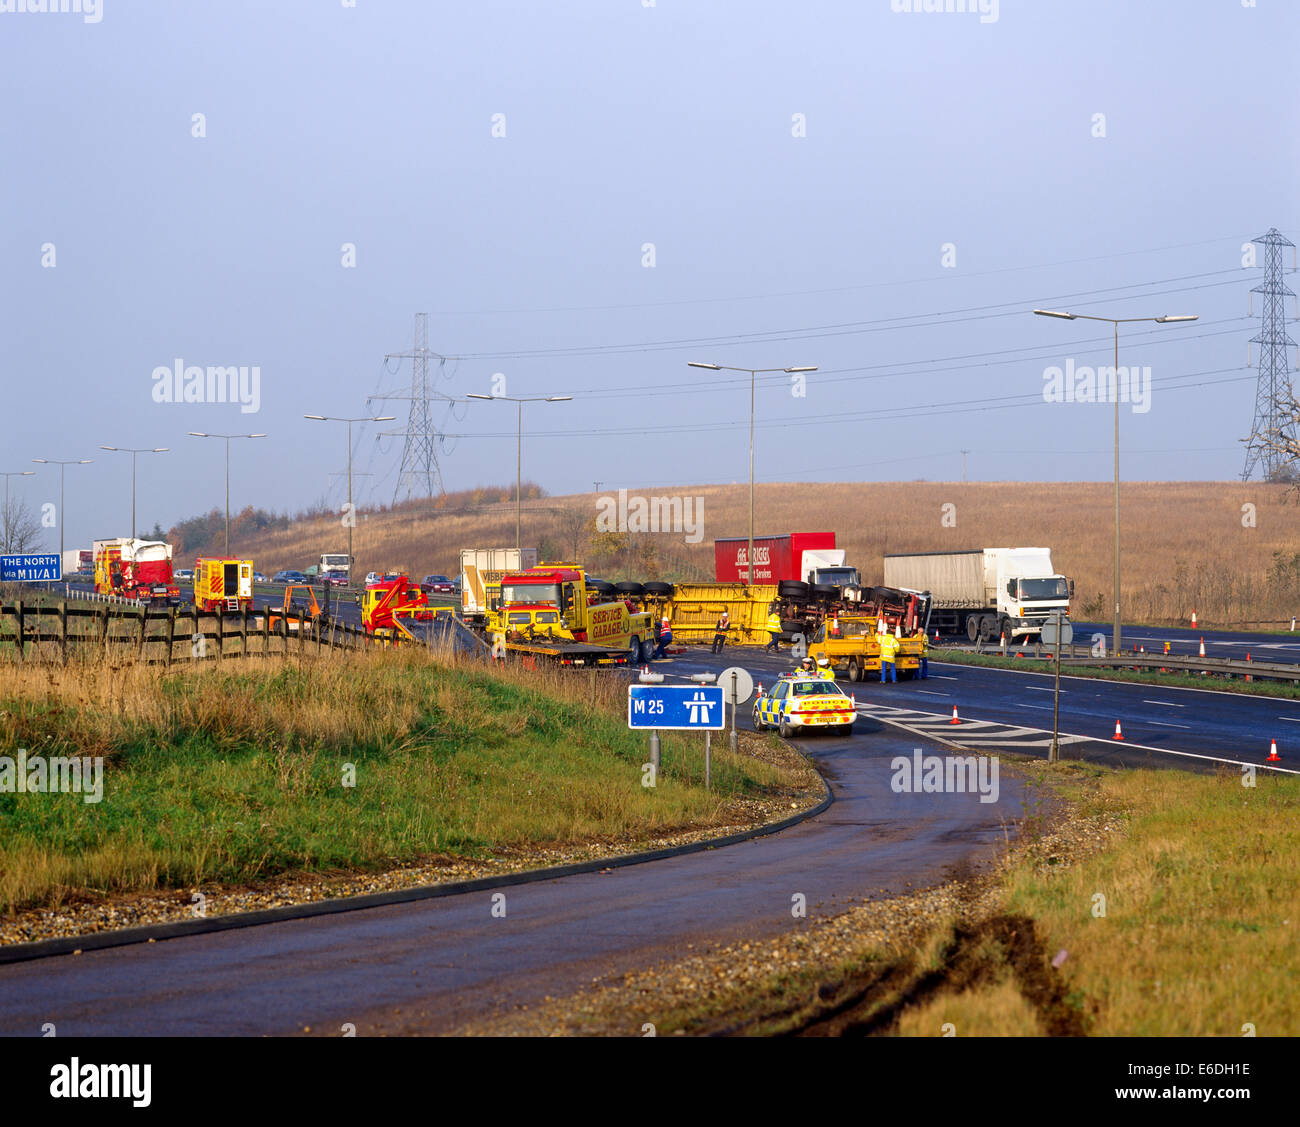 Lorry Accident m25 near Junction 27 Essex UK - Stock Image